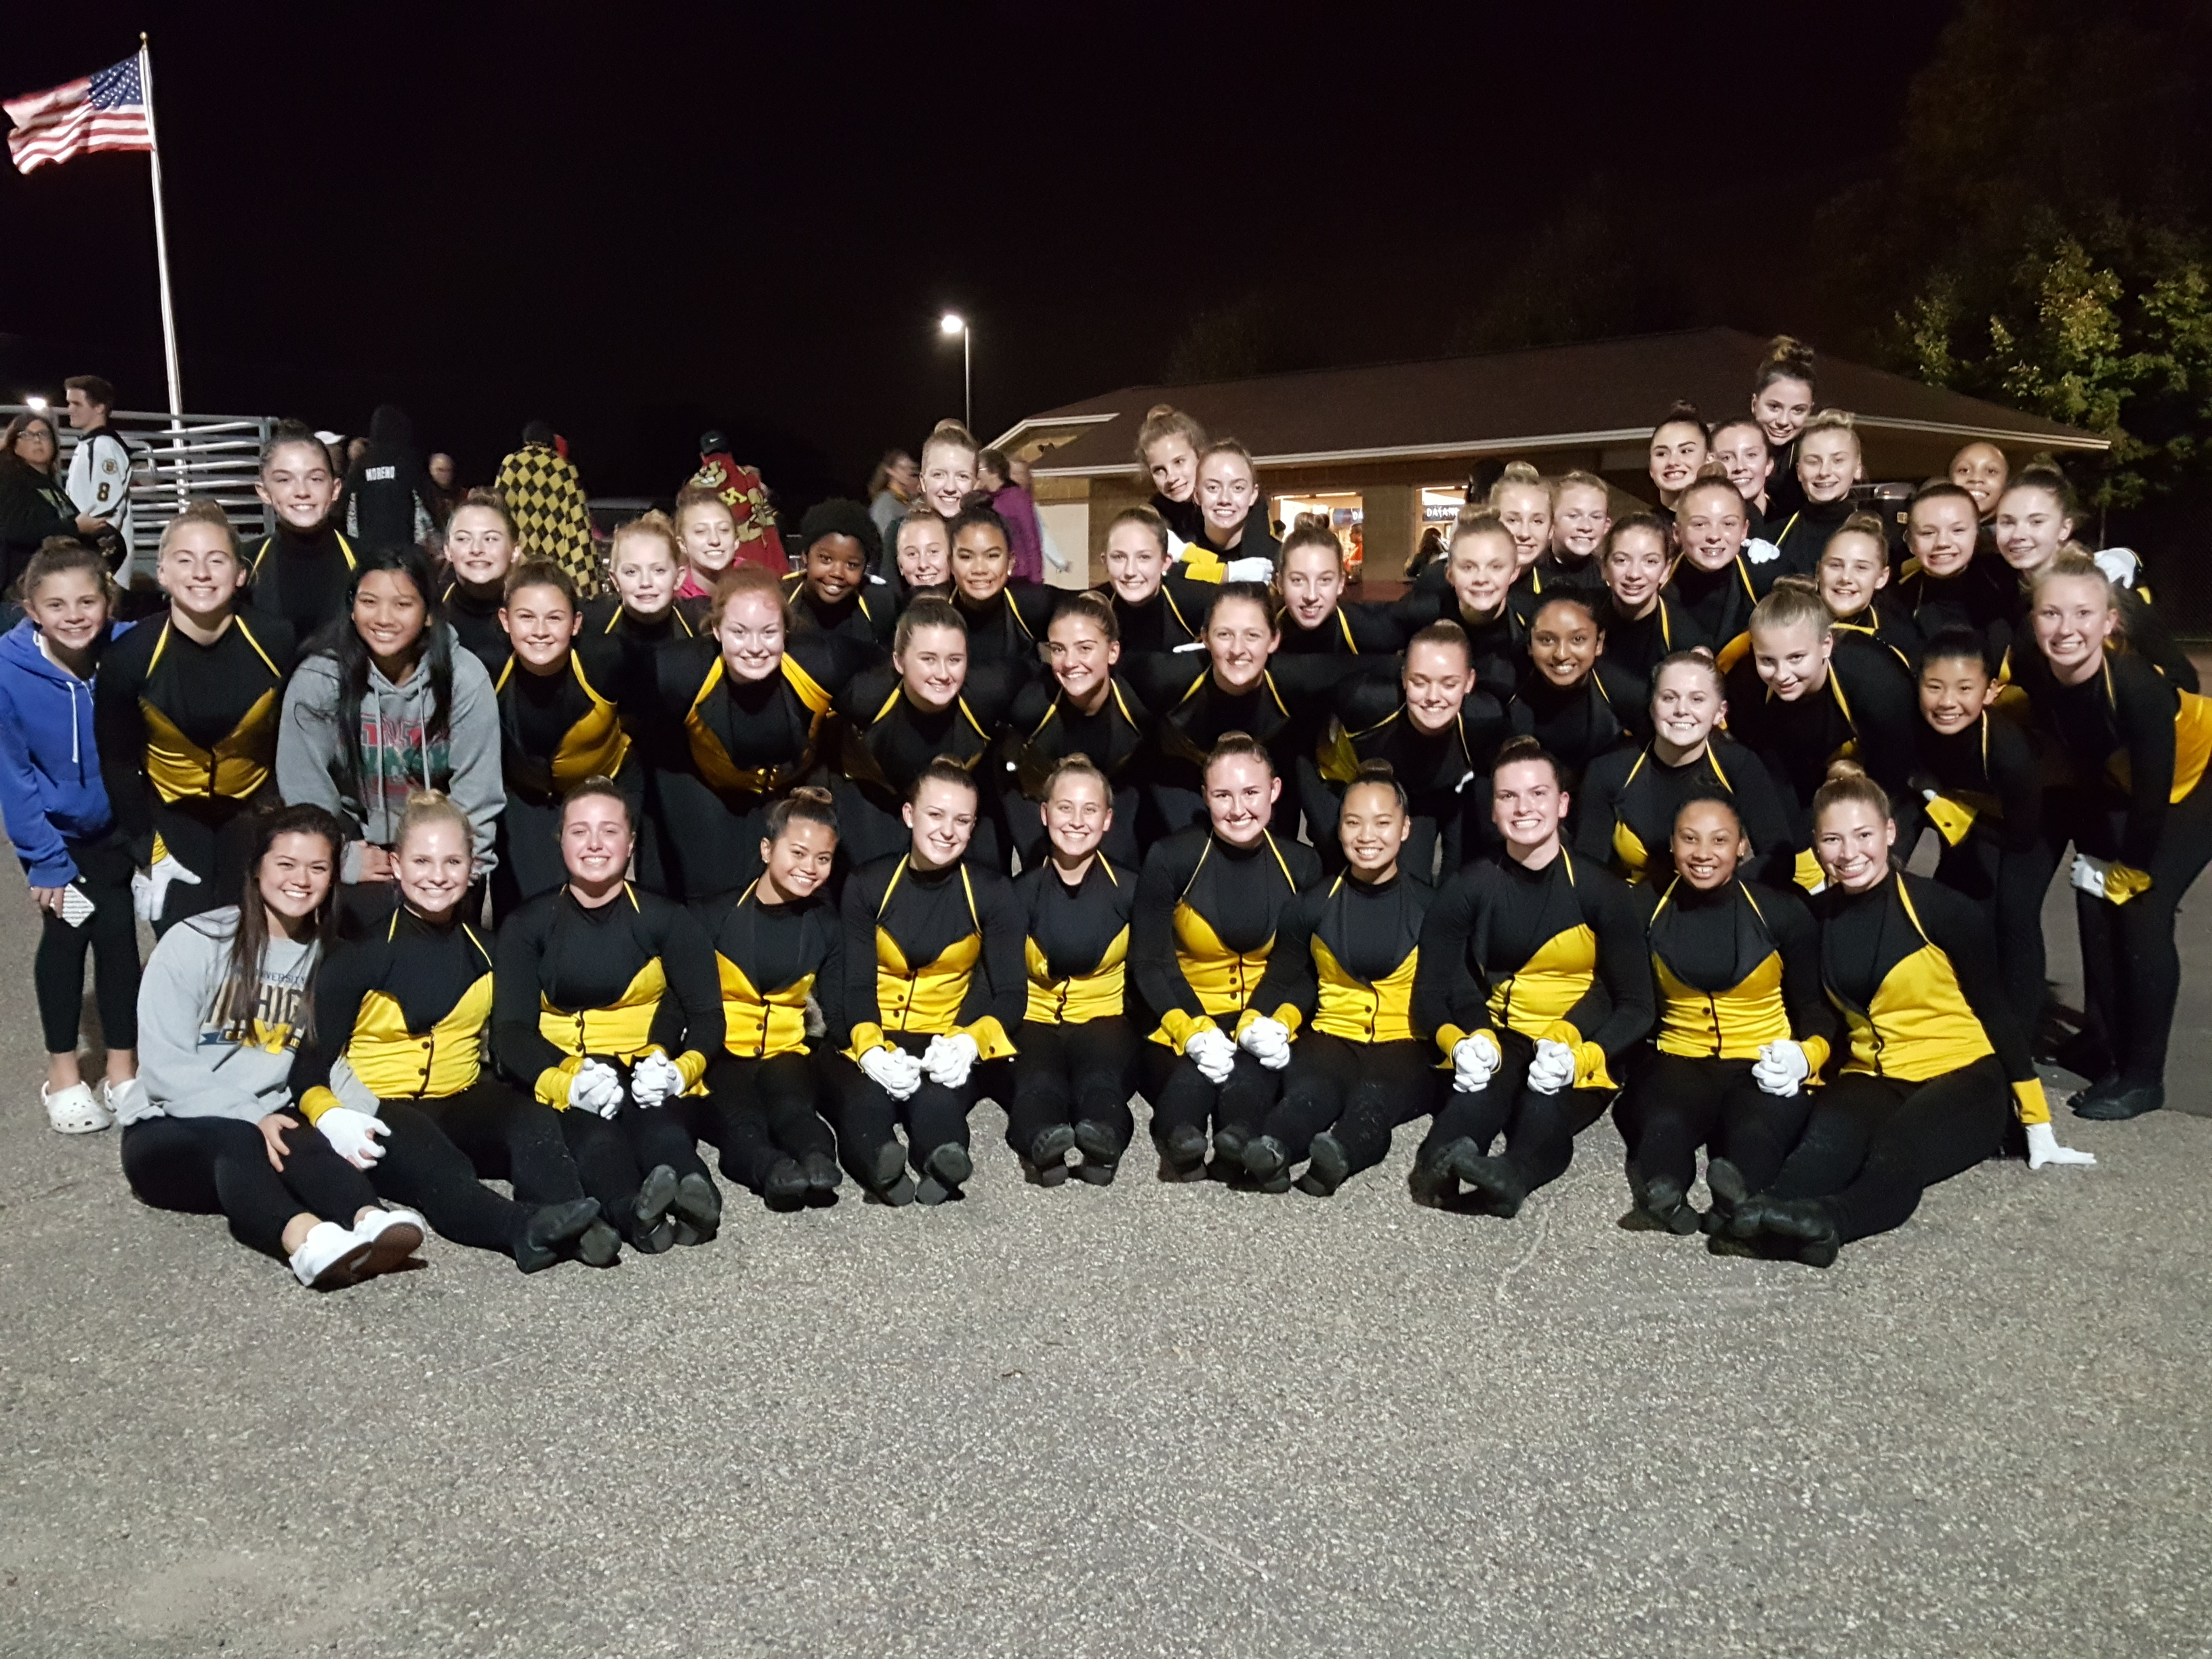 2017-10-05 Blazettes Kick Tux Girls Soccer Game 042